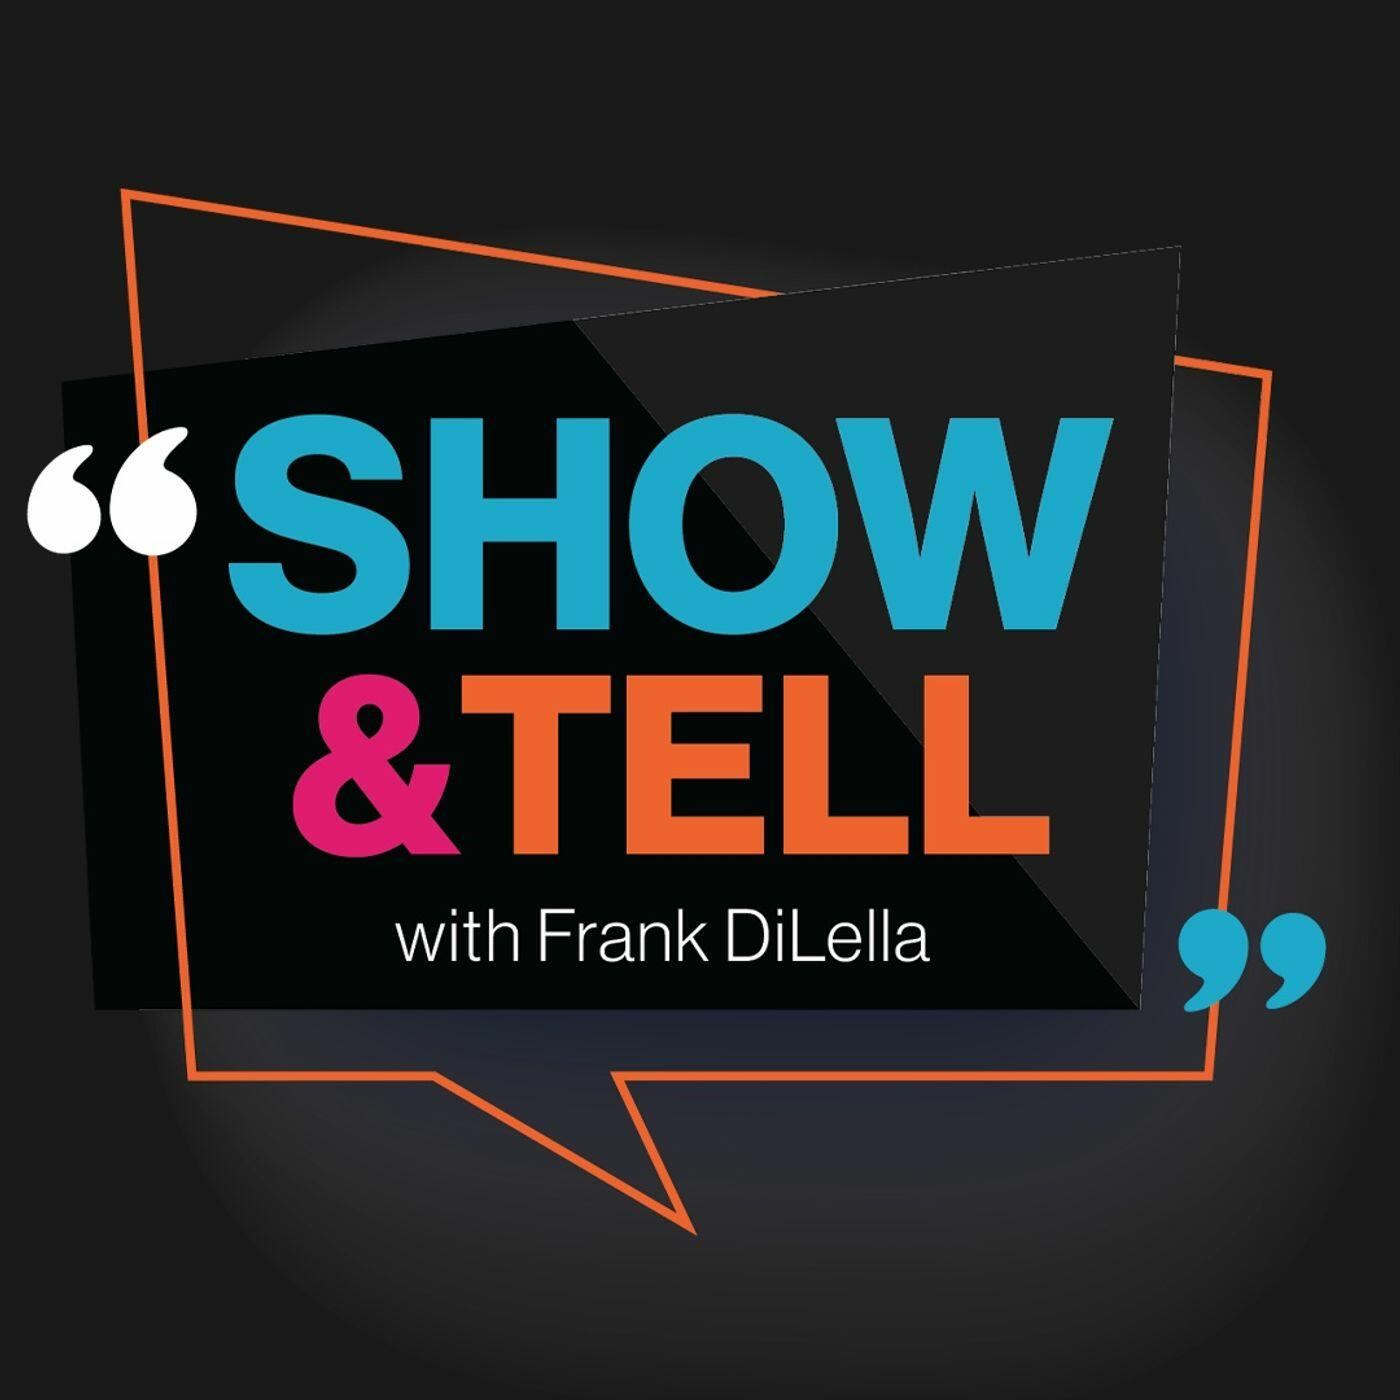 Show & Tell with Frank DiLella